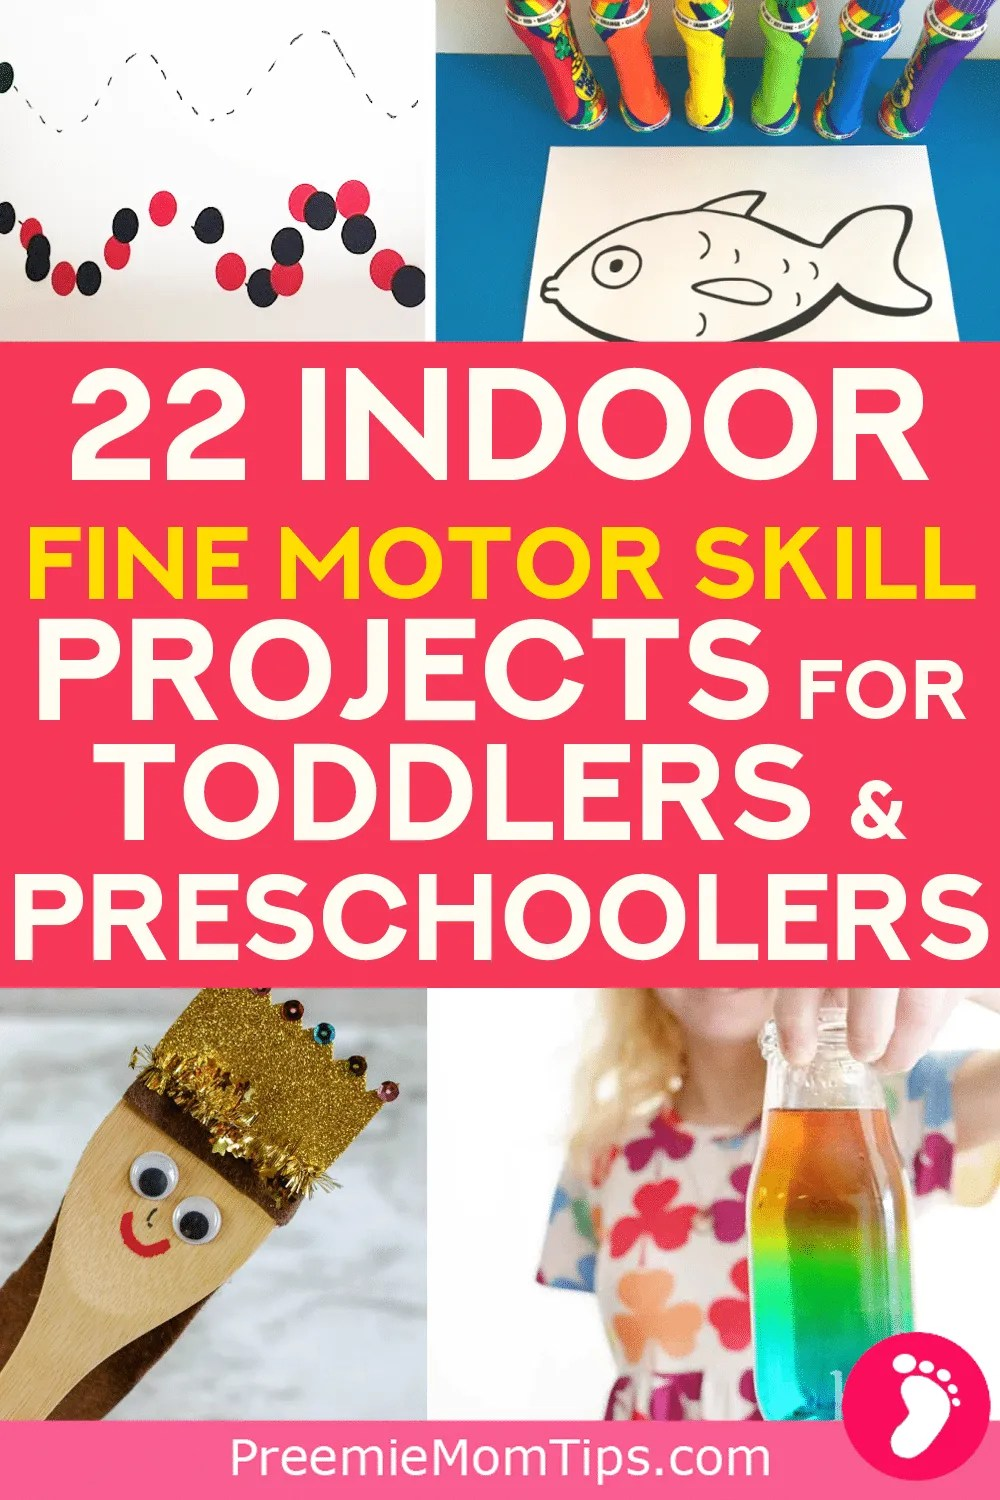 Keep your kids entertained at home while developing their fine motor skills with these 22 indoor activites for kids under 6 that are pure genius!